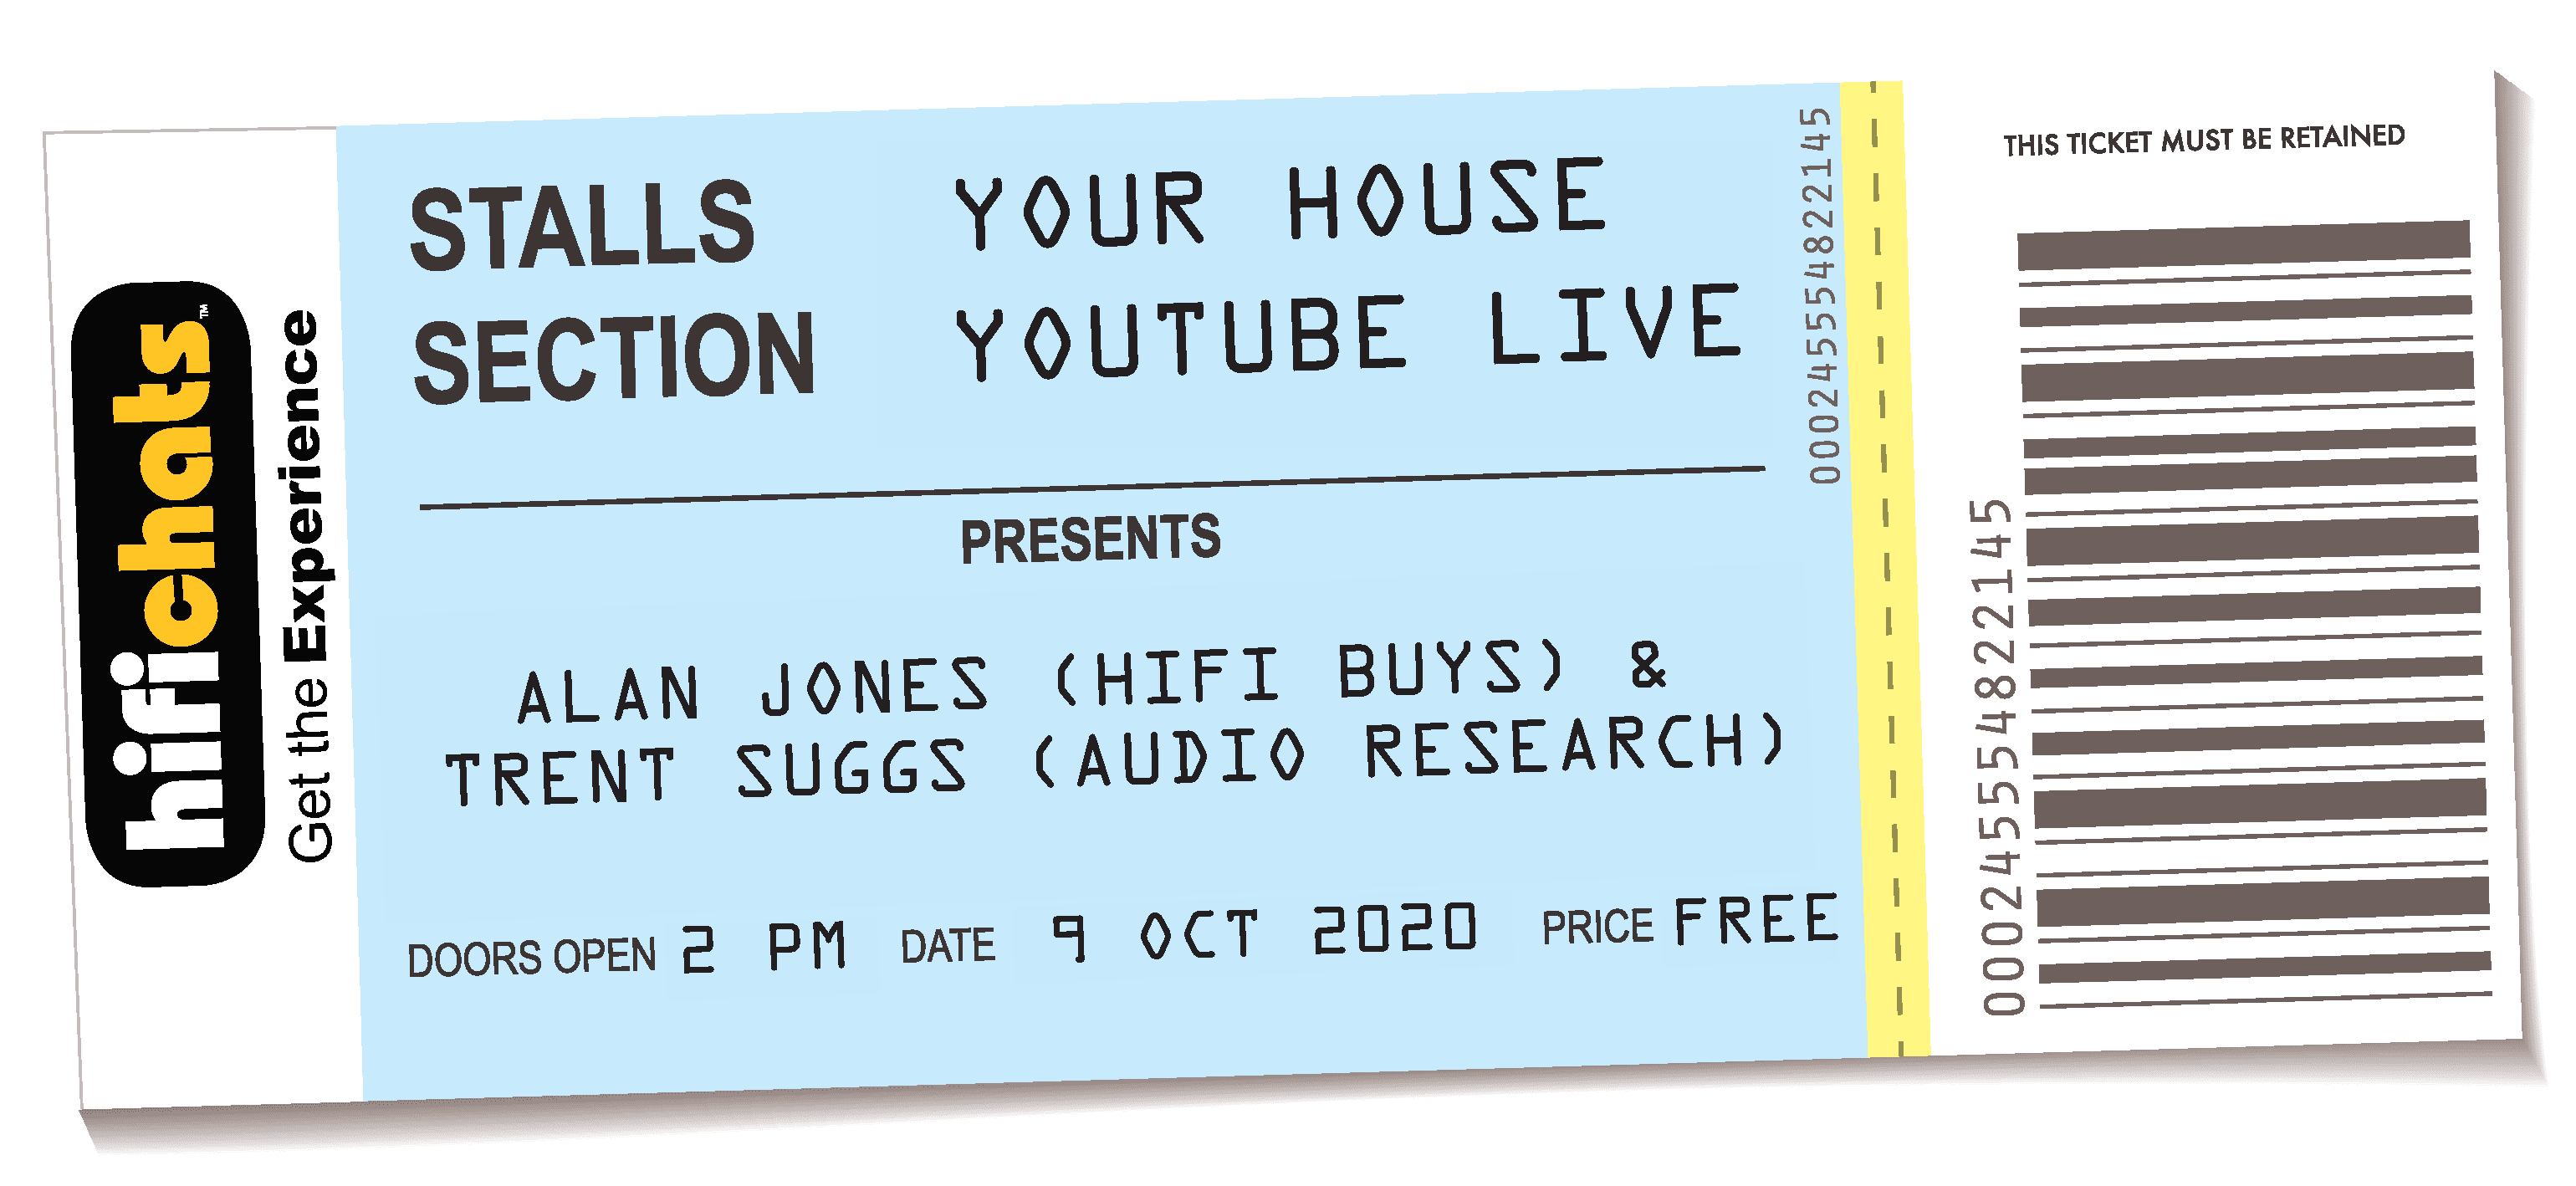 HFC Ticket Audio Research CROPPED